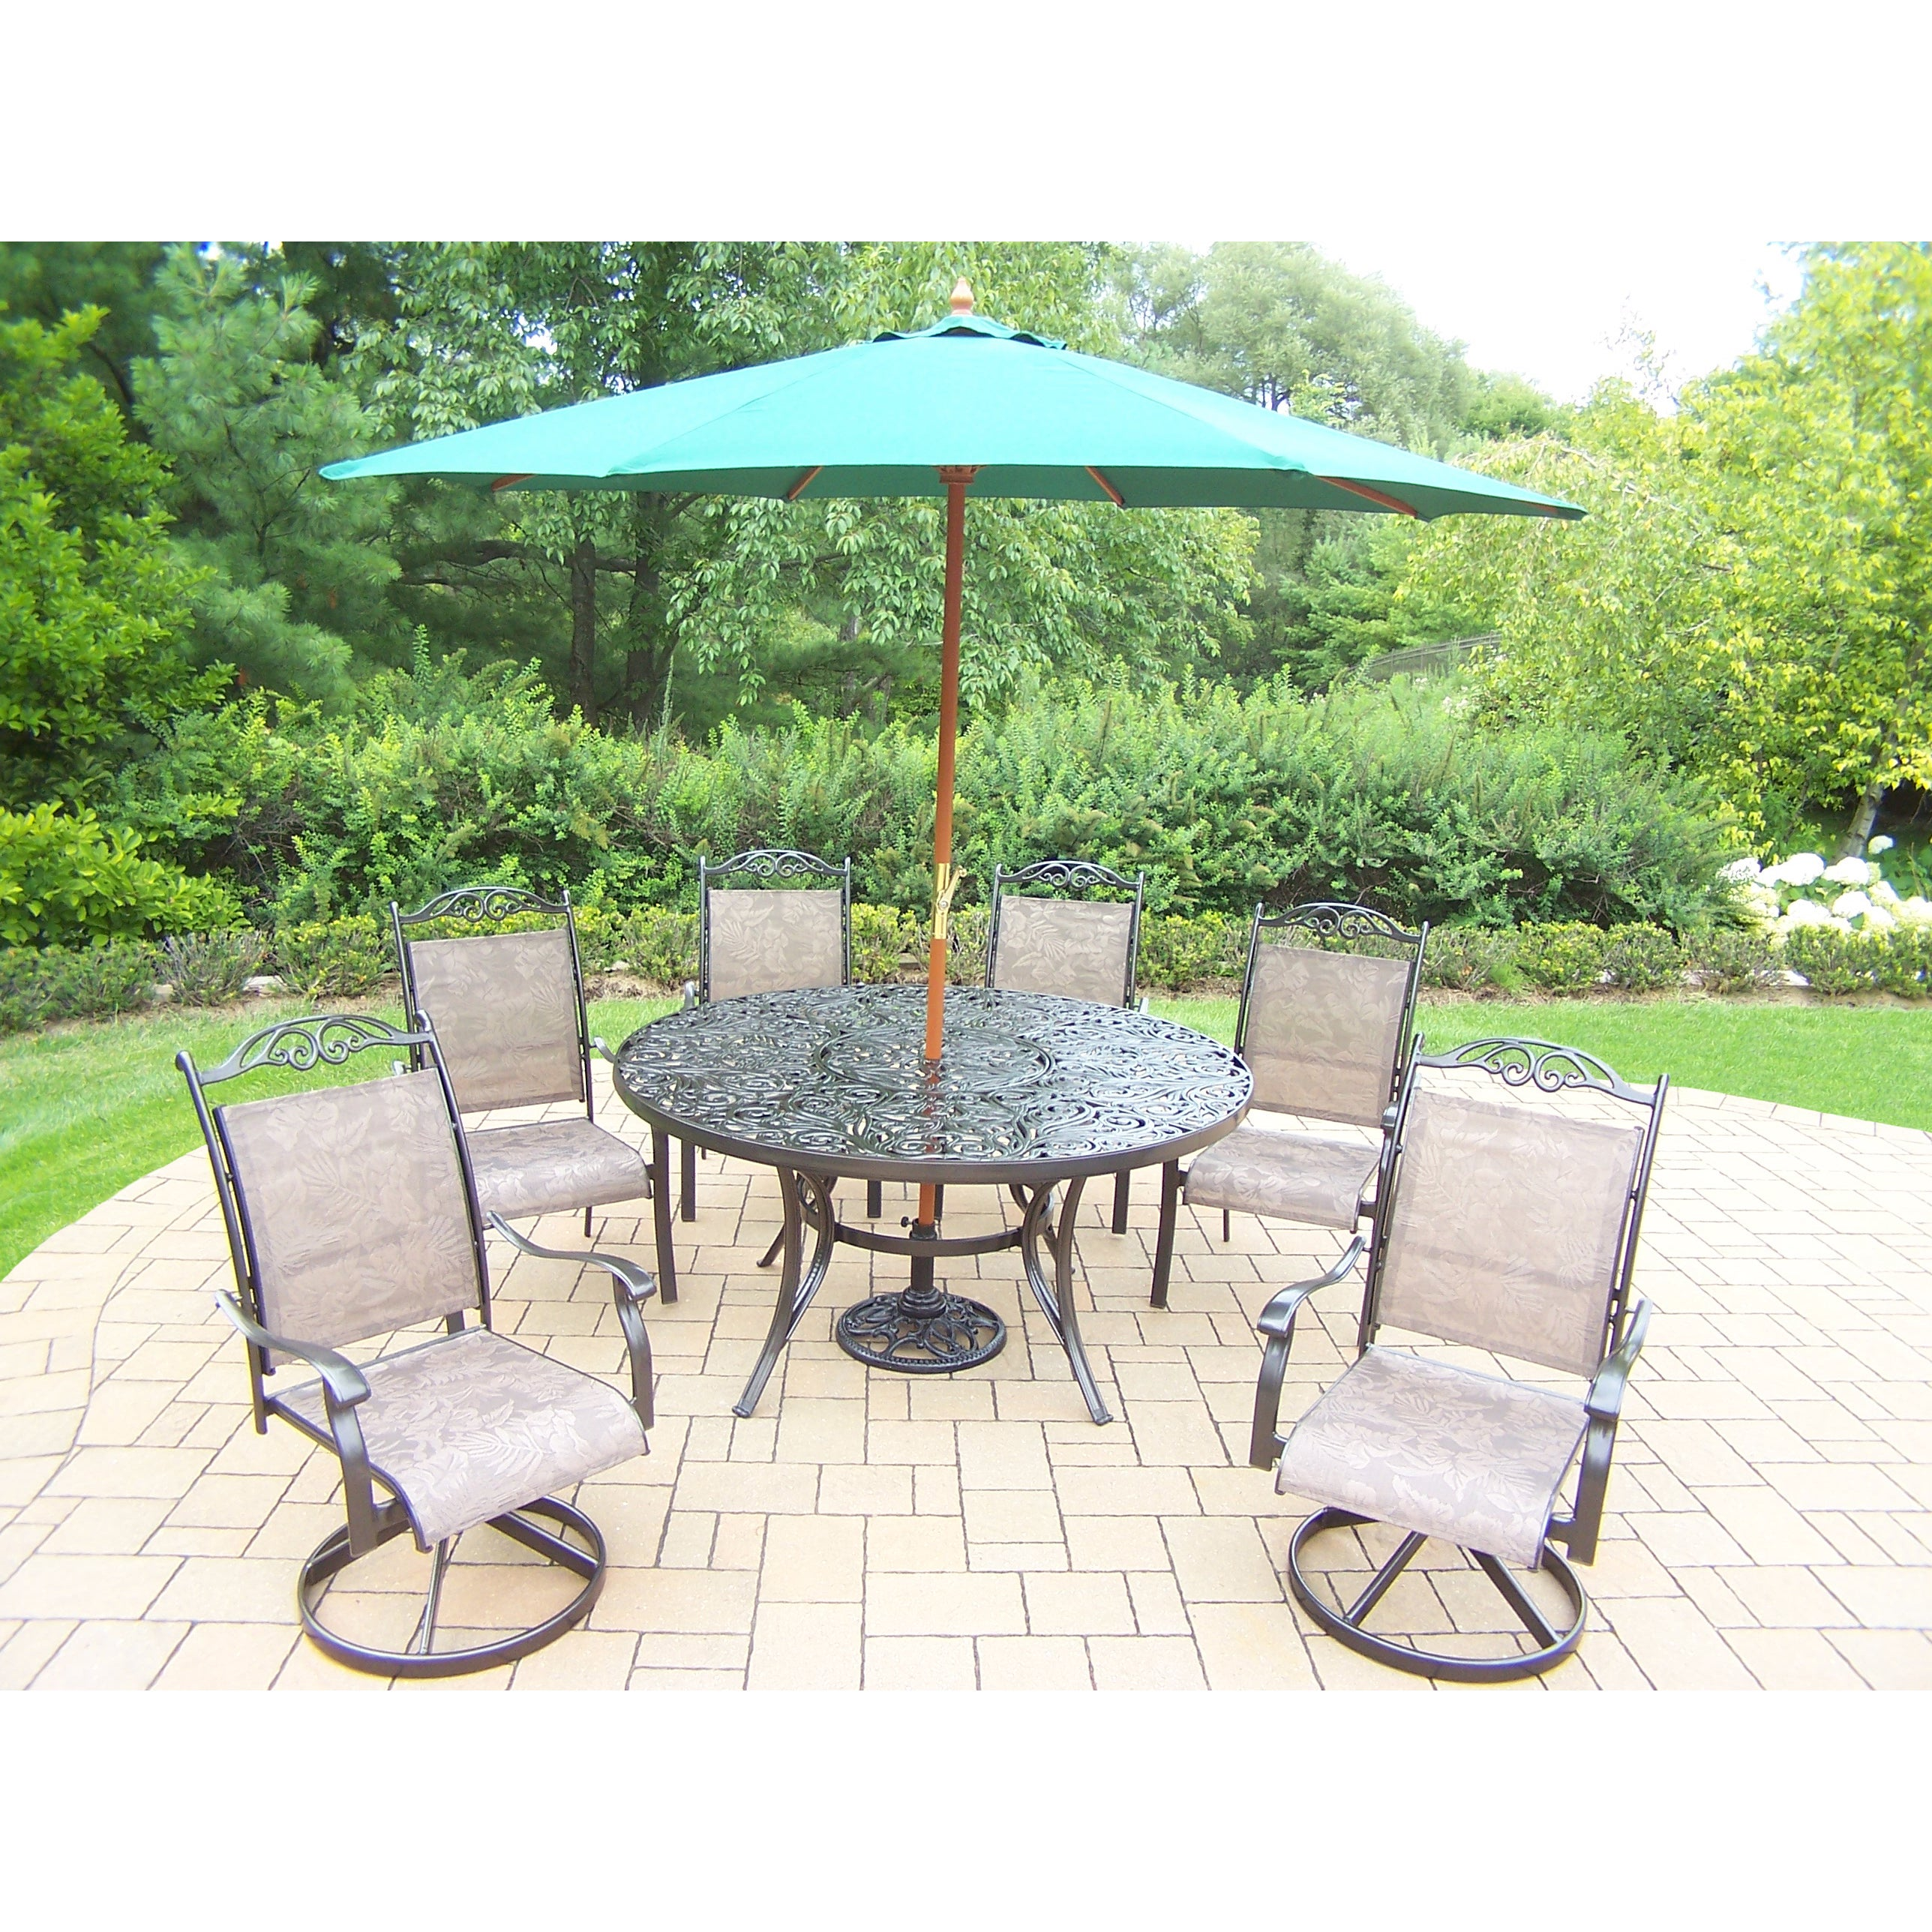 furniture room wicker cushions umbrella aluminum patio dining full size of for wood metal outdoor rustic outsmarting hole indoor uk wooden vs usa with table